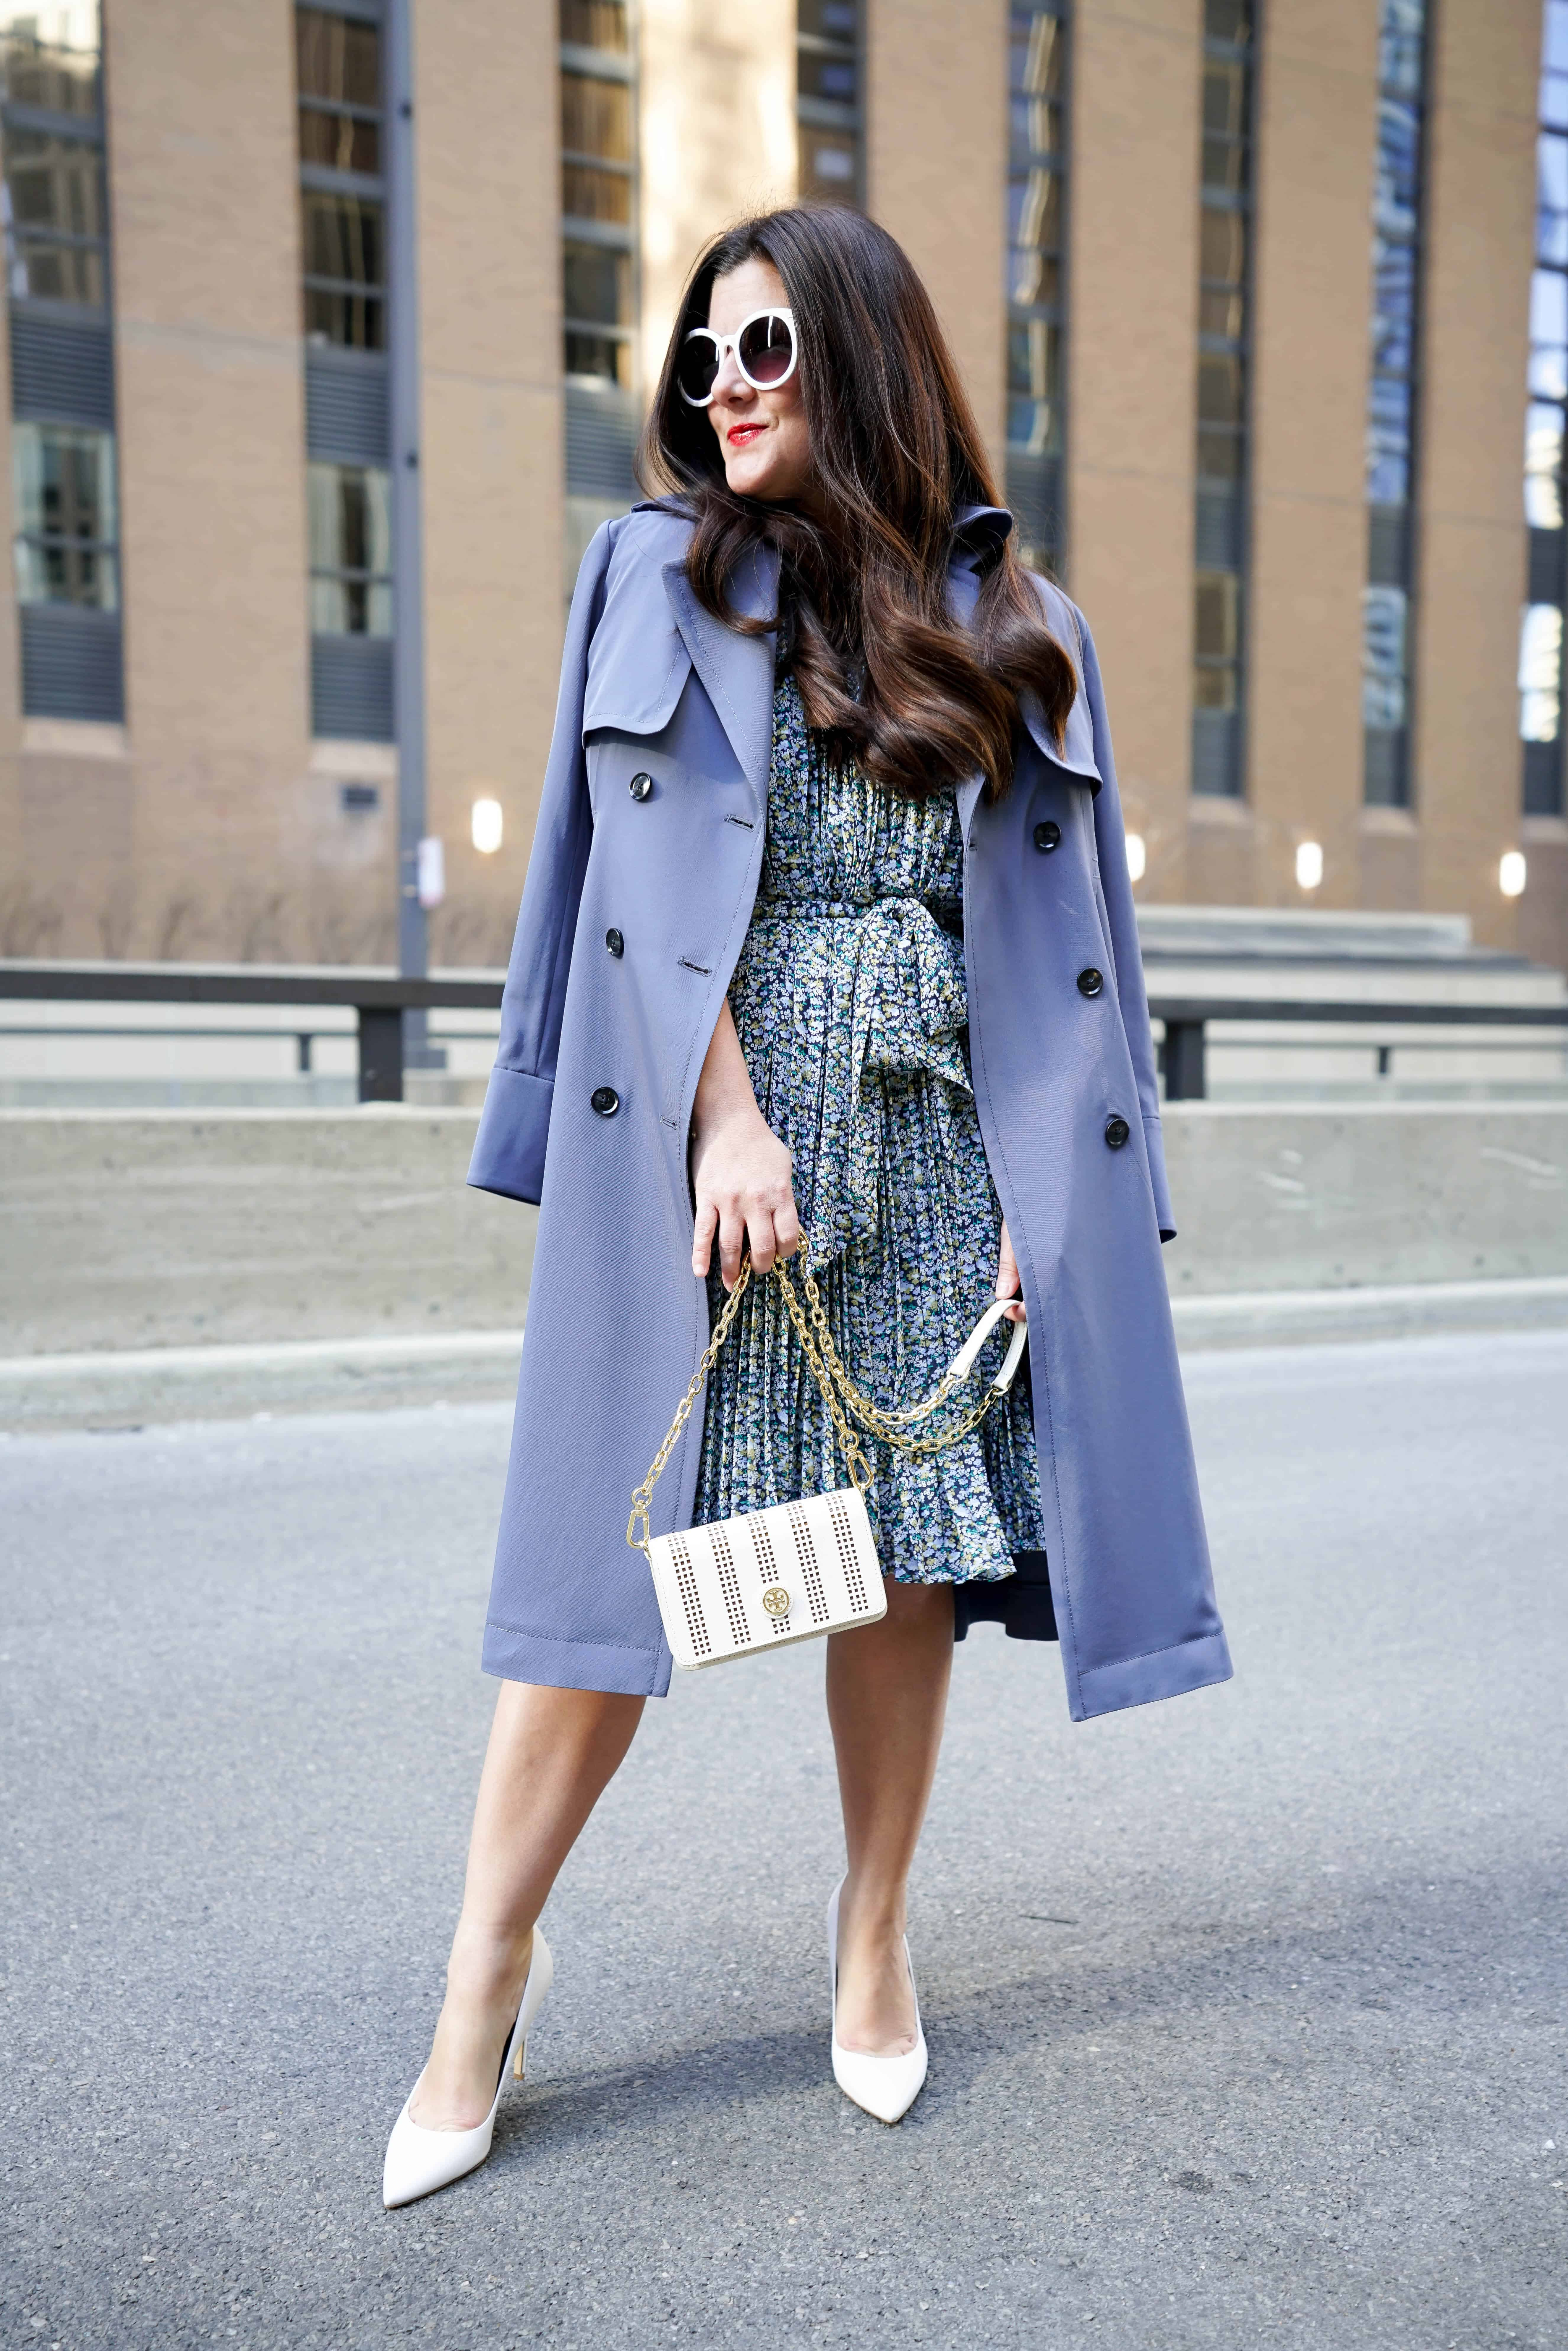 The Spring Trench || Take Two